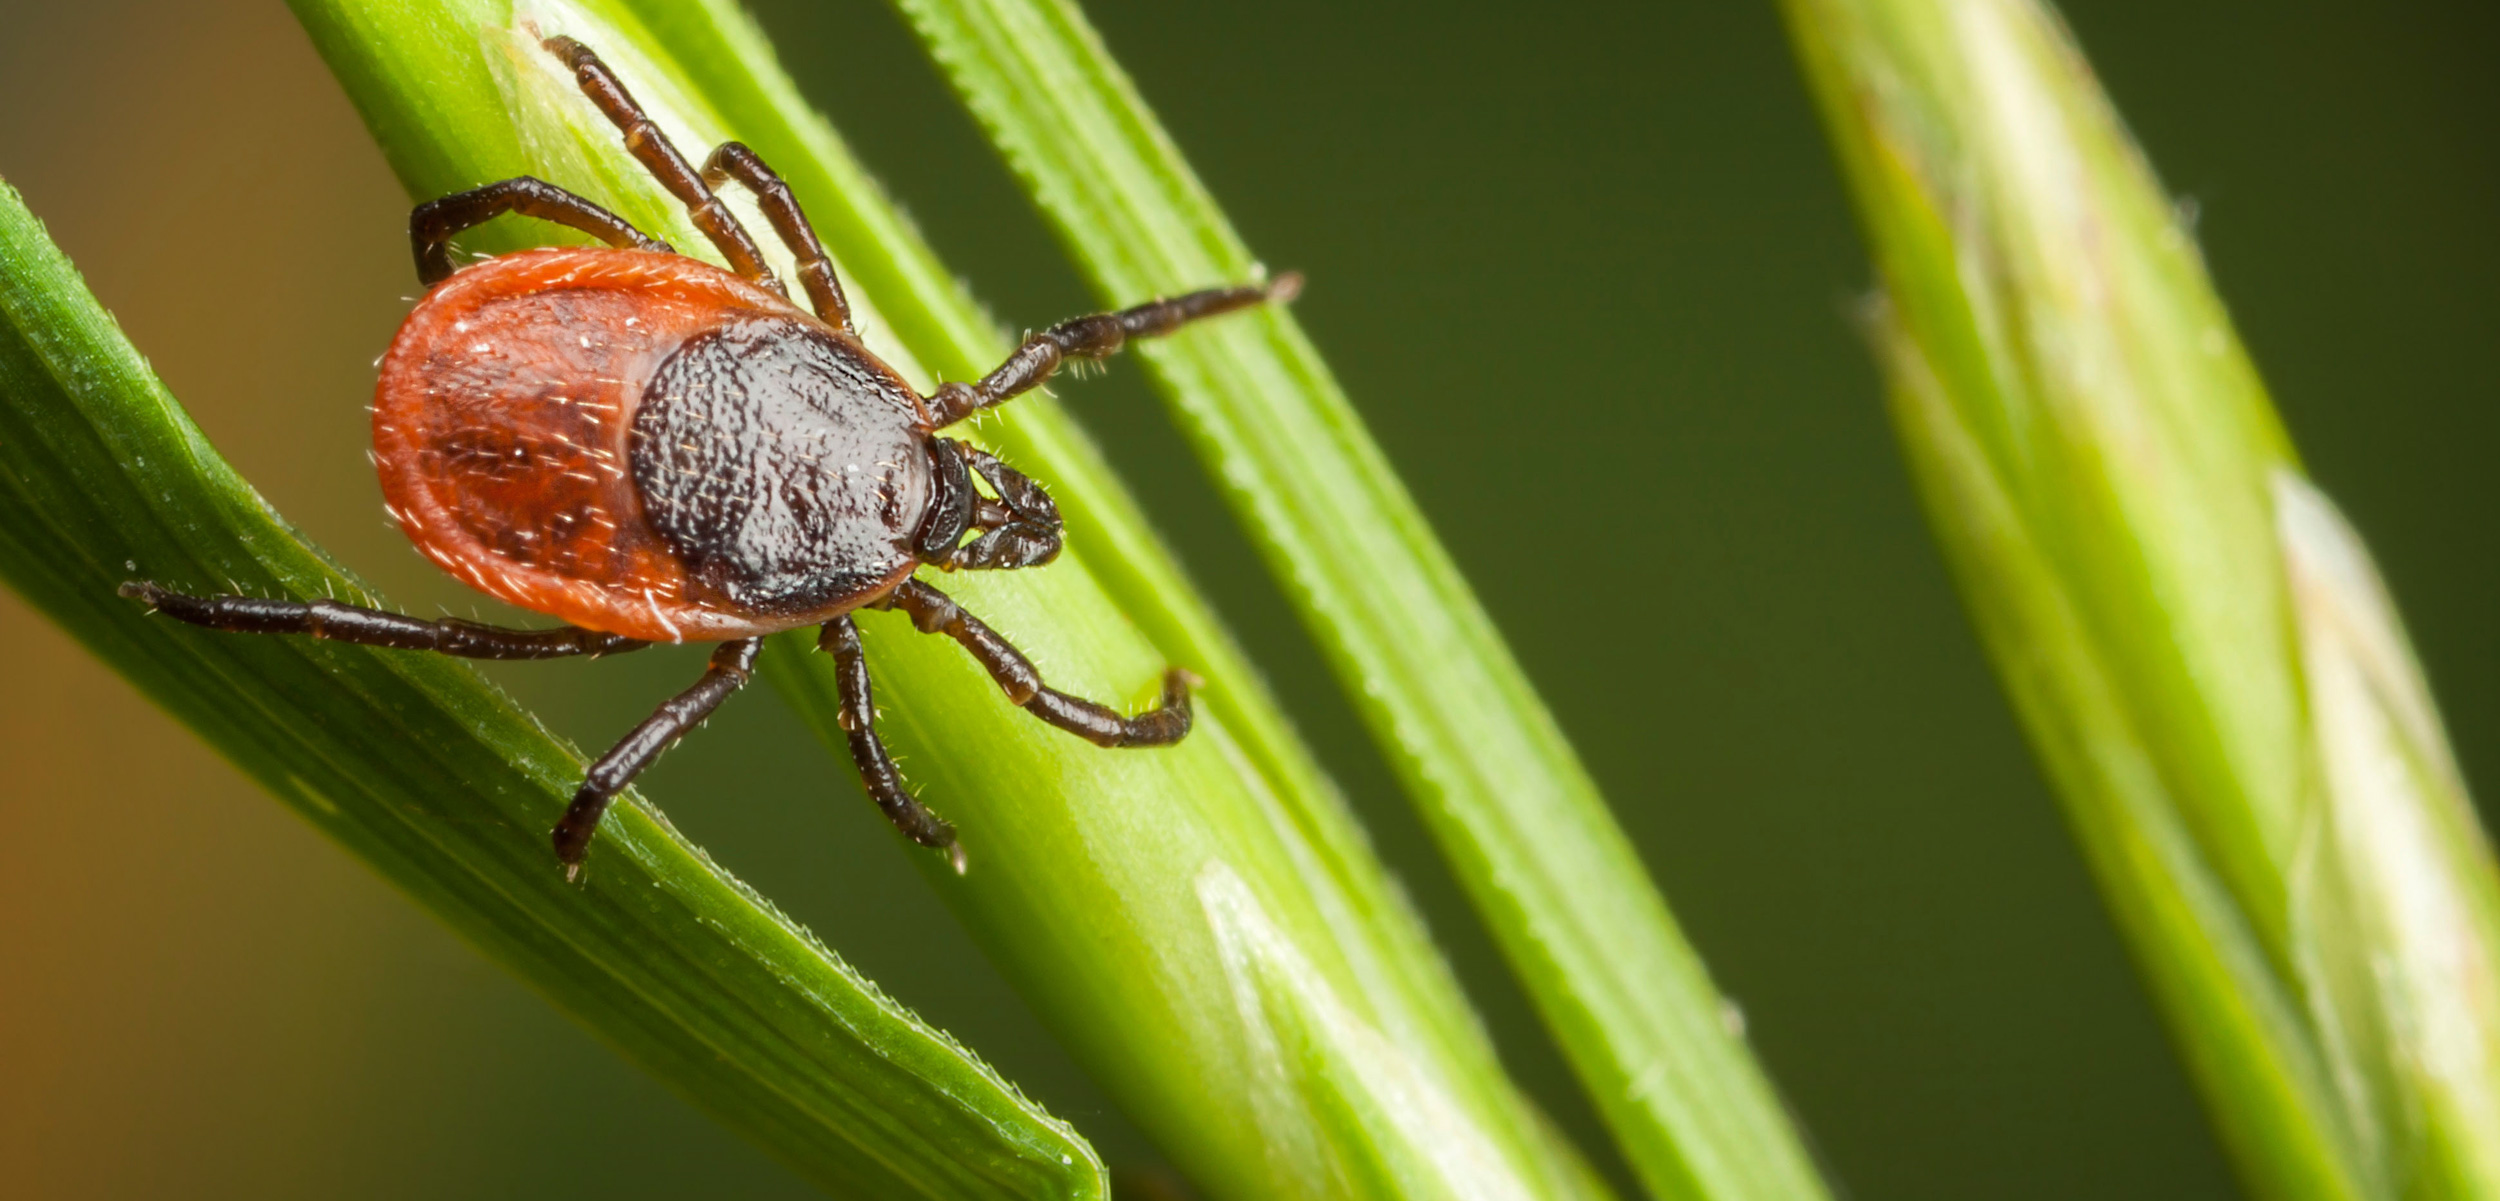 A deer tick infected with the Borrelia burgdorferi bacterium can cause Lyme disease in humans, typically after being attached to the body—often in hidden places, such as the groin, armpits, or scalp—for 36 to 48 hours. Photo by Risto Hunt/Alamy Stock Photo